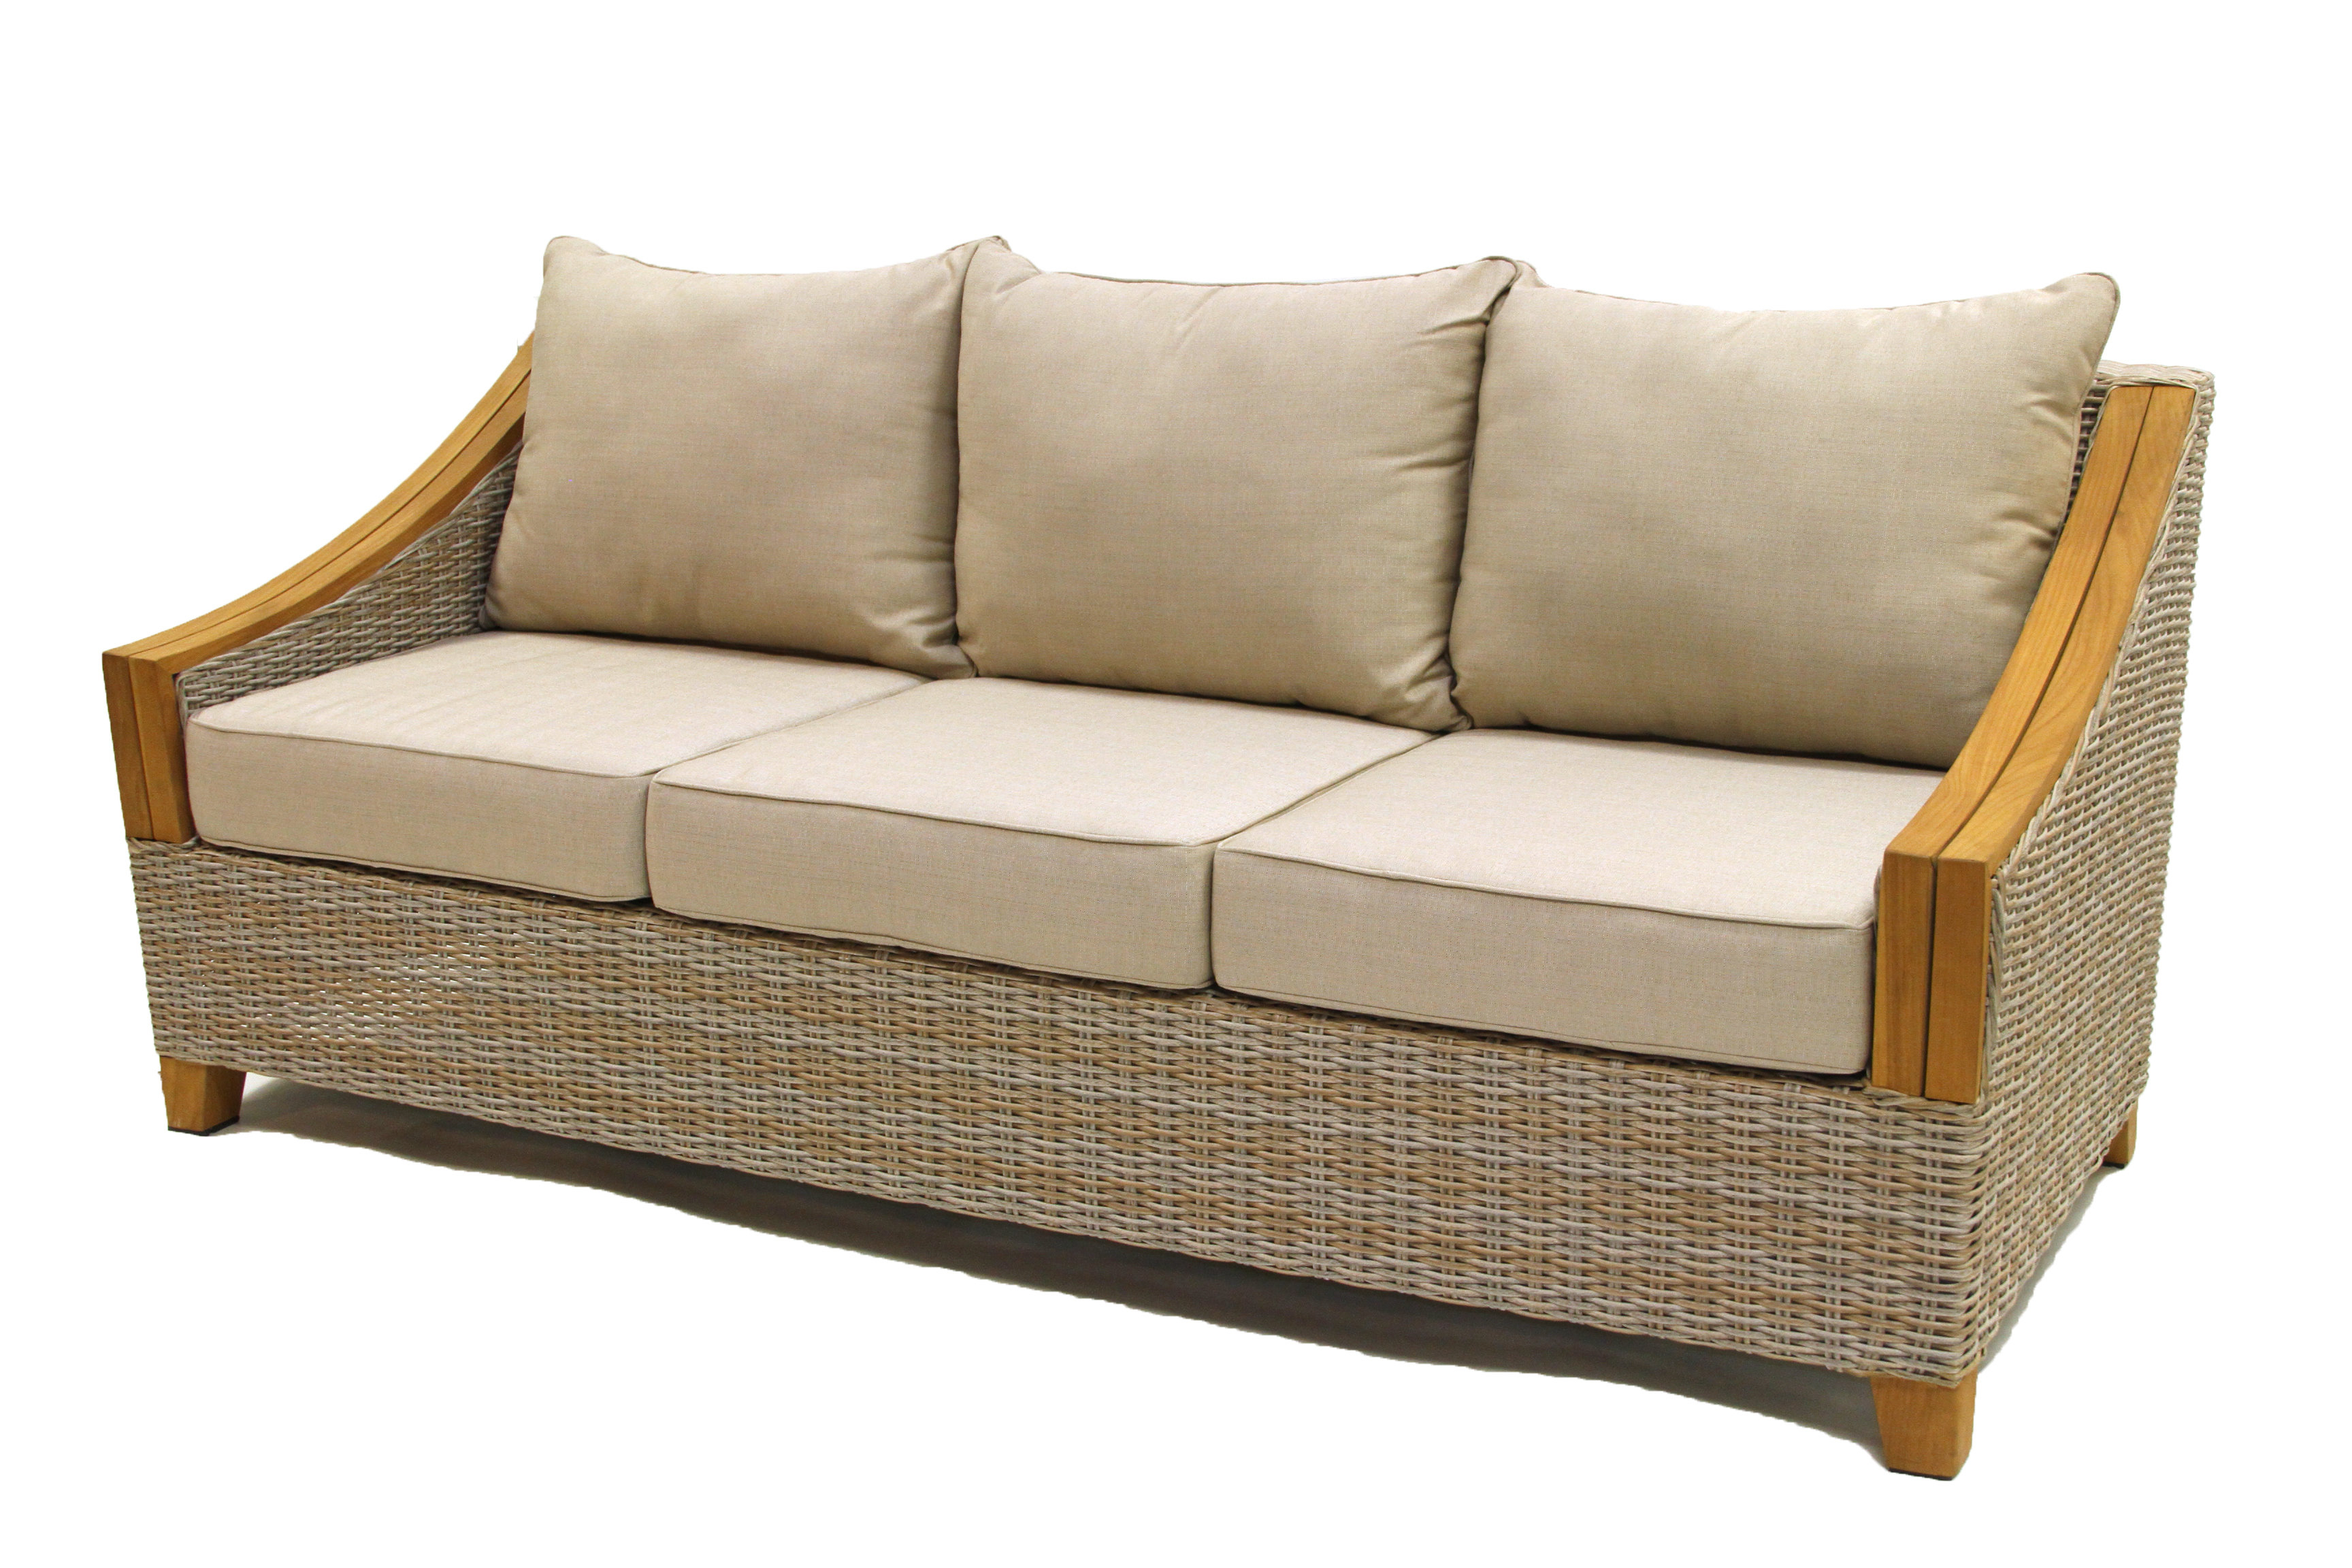 Famous Mansfield Teak Loveseats With Cushion With Regard To Kincaid Teak Patio Sofa With Sunbrella Cushions (View 18 of 20)